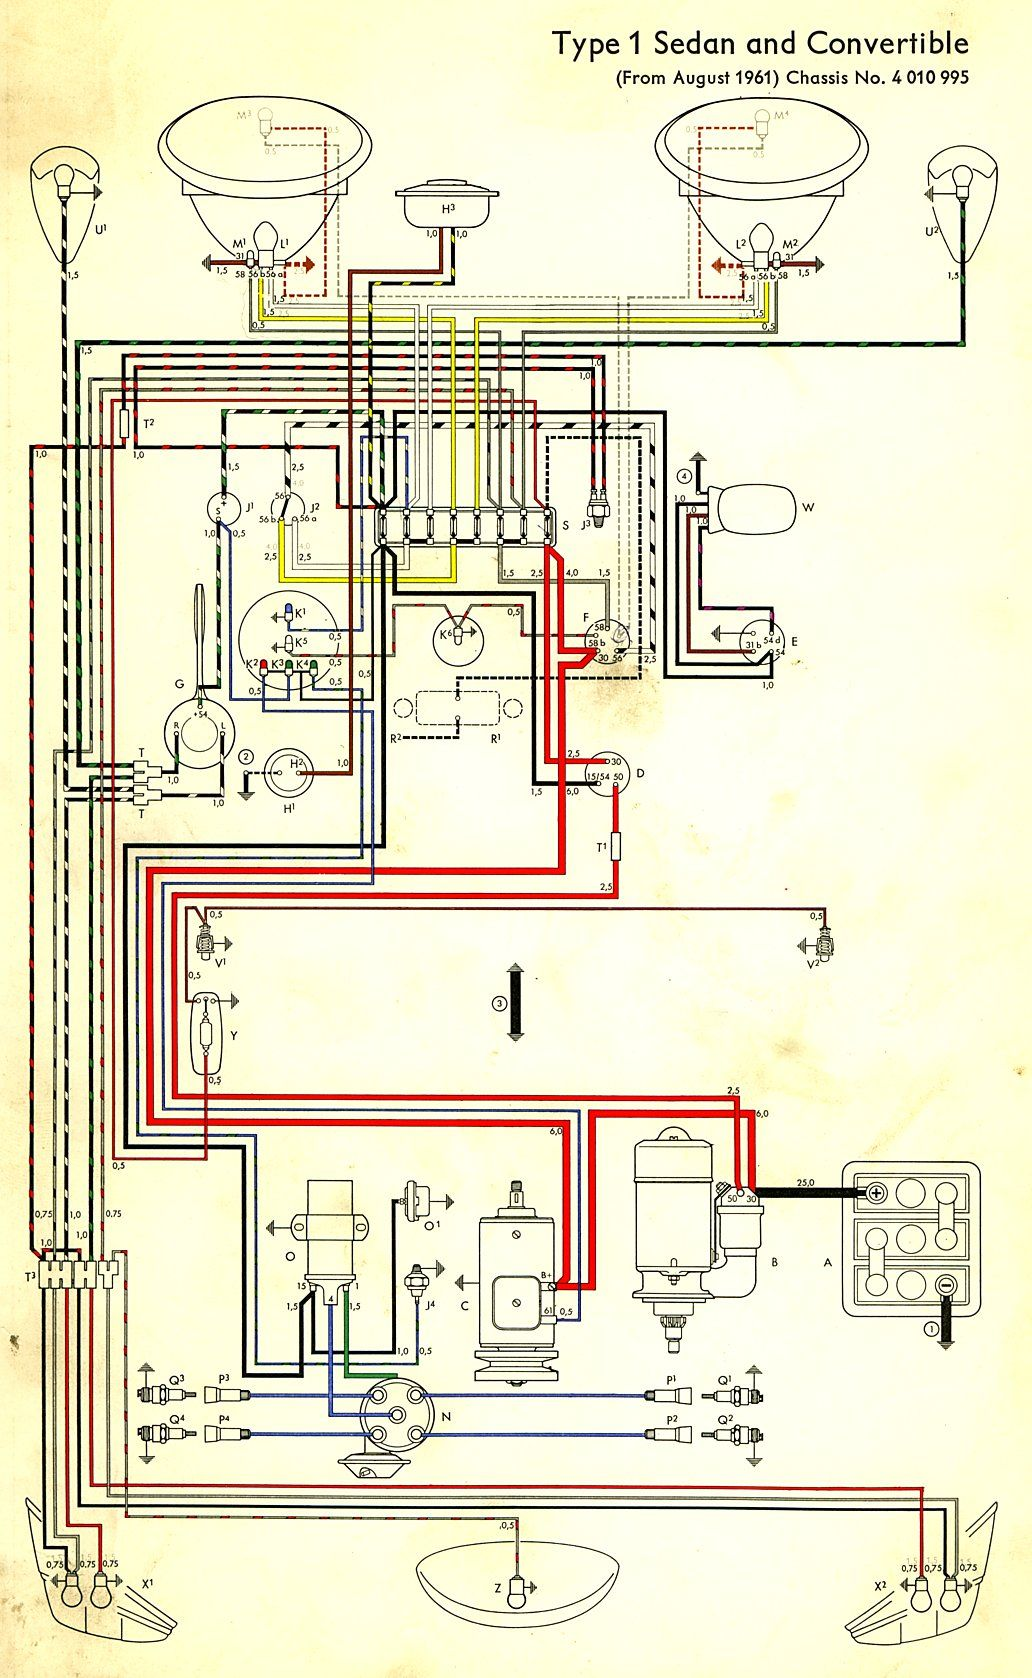 medium resolution of 1966 vw beetle wiring harness wiring diagram inside 1974 vw bug wiring 1966 vw bug wiring